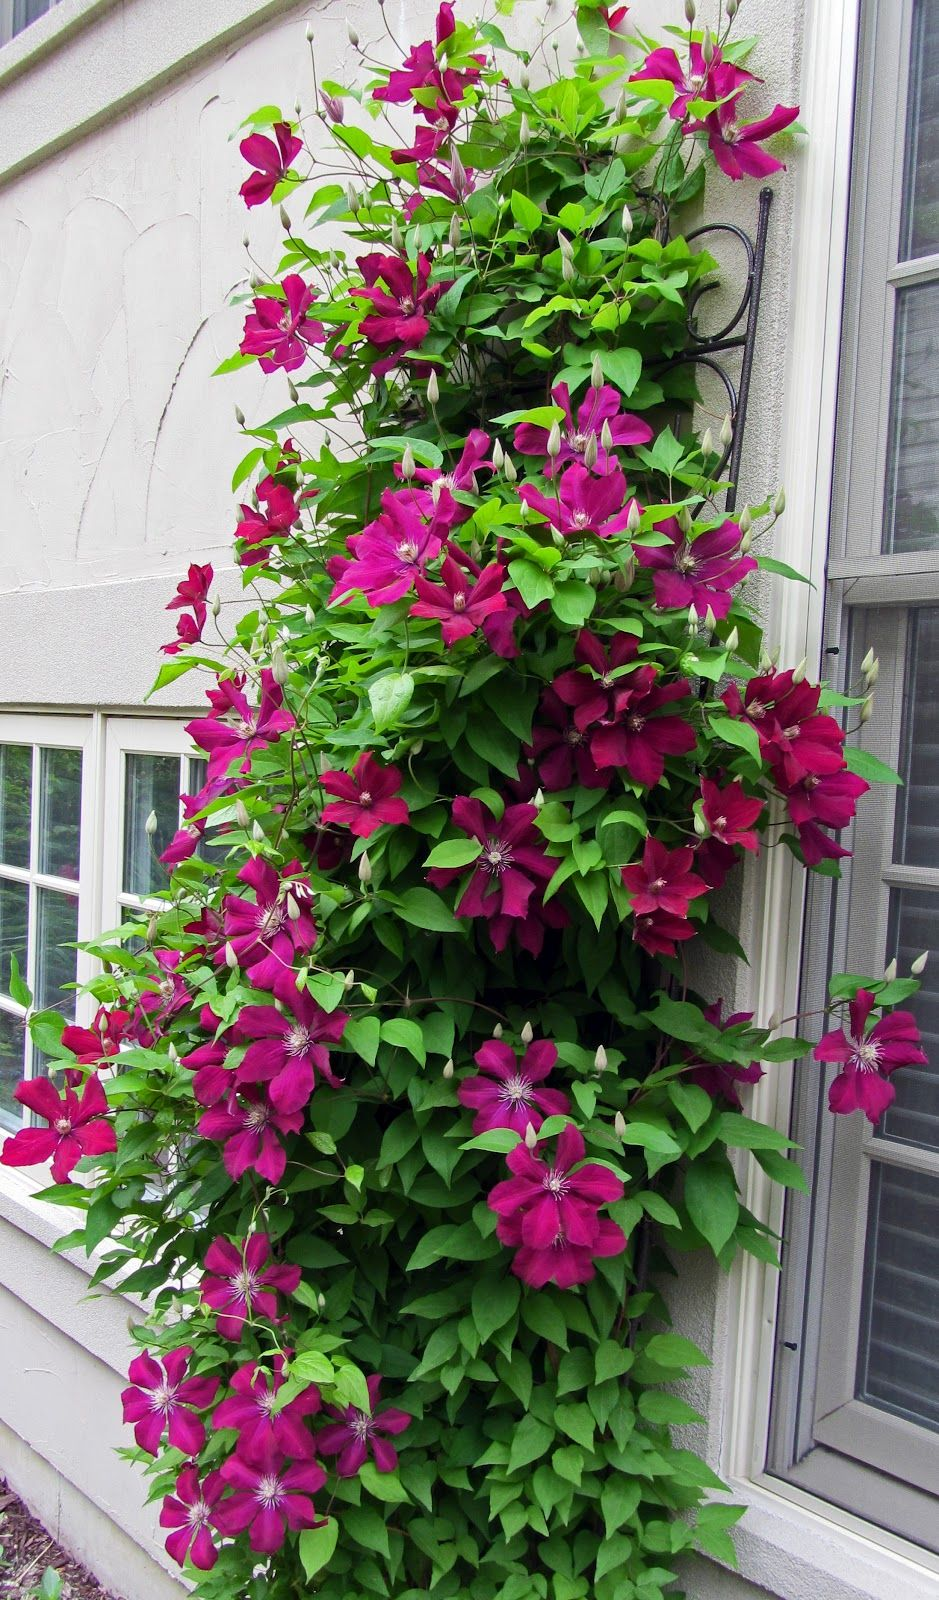 clematis rouge cardinal google search clematis pinterest clematis cardinals and rouge. Black Bedroom Furniture Sets. Home Design Ideas